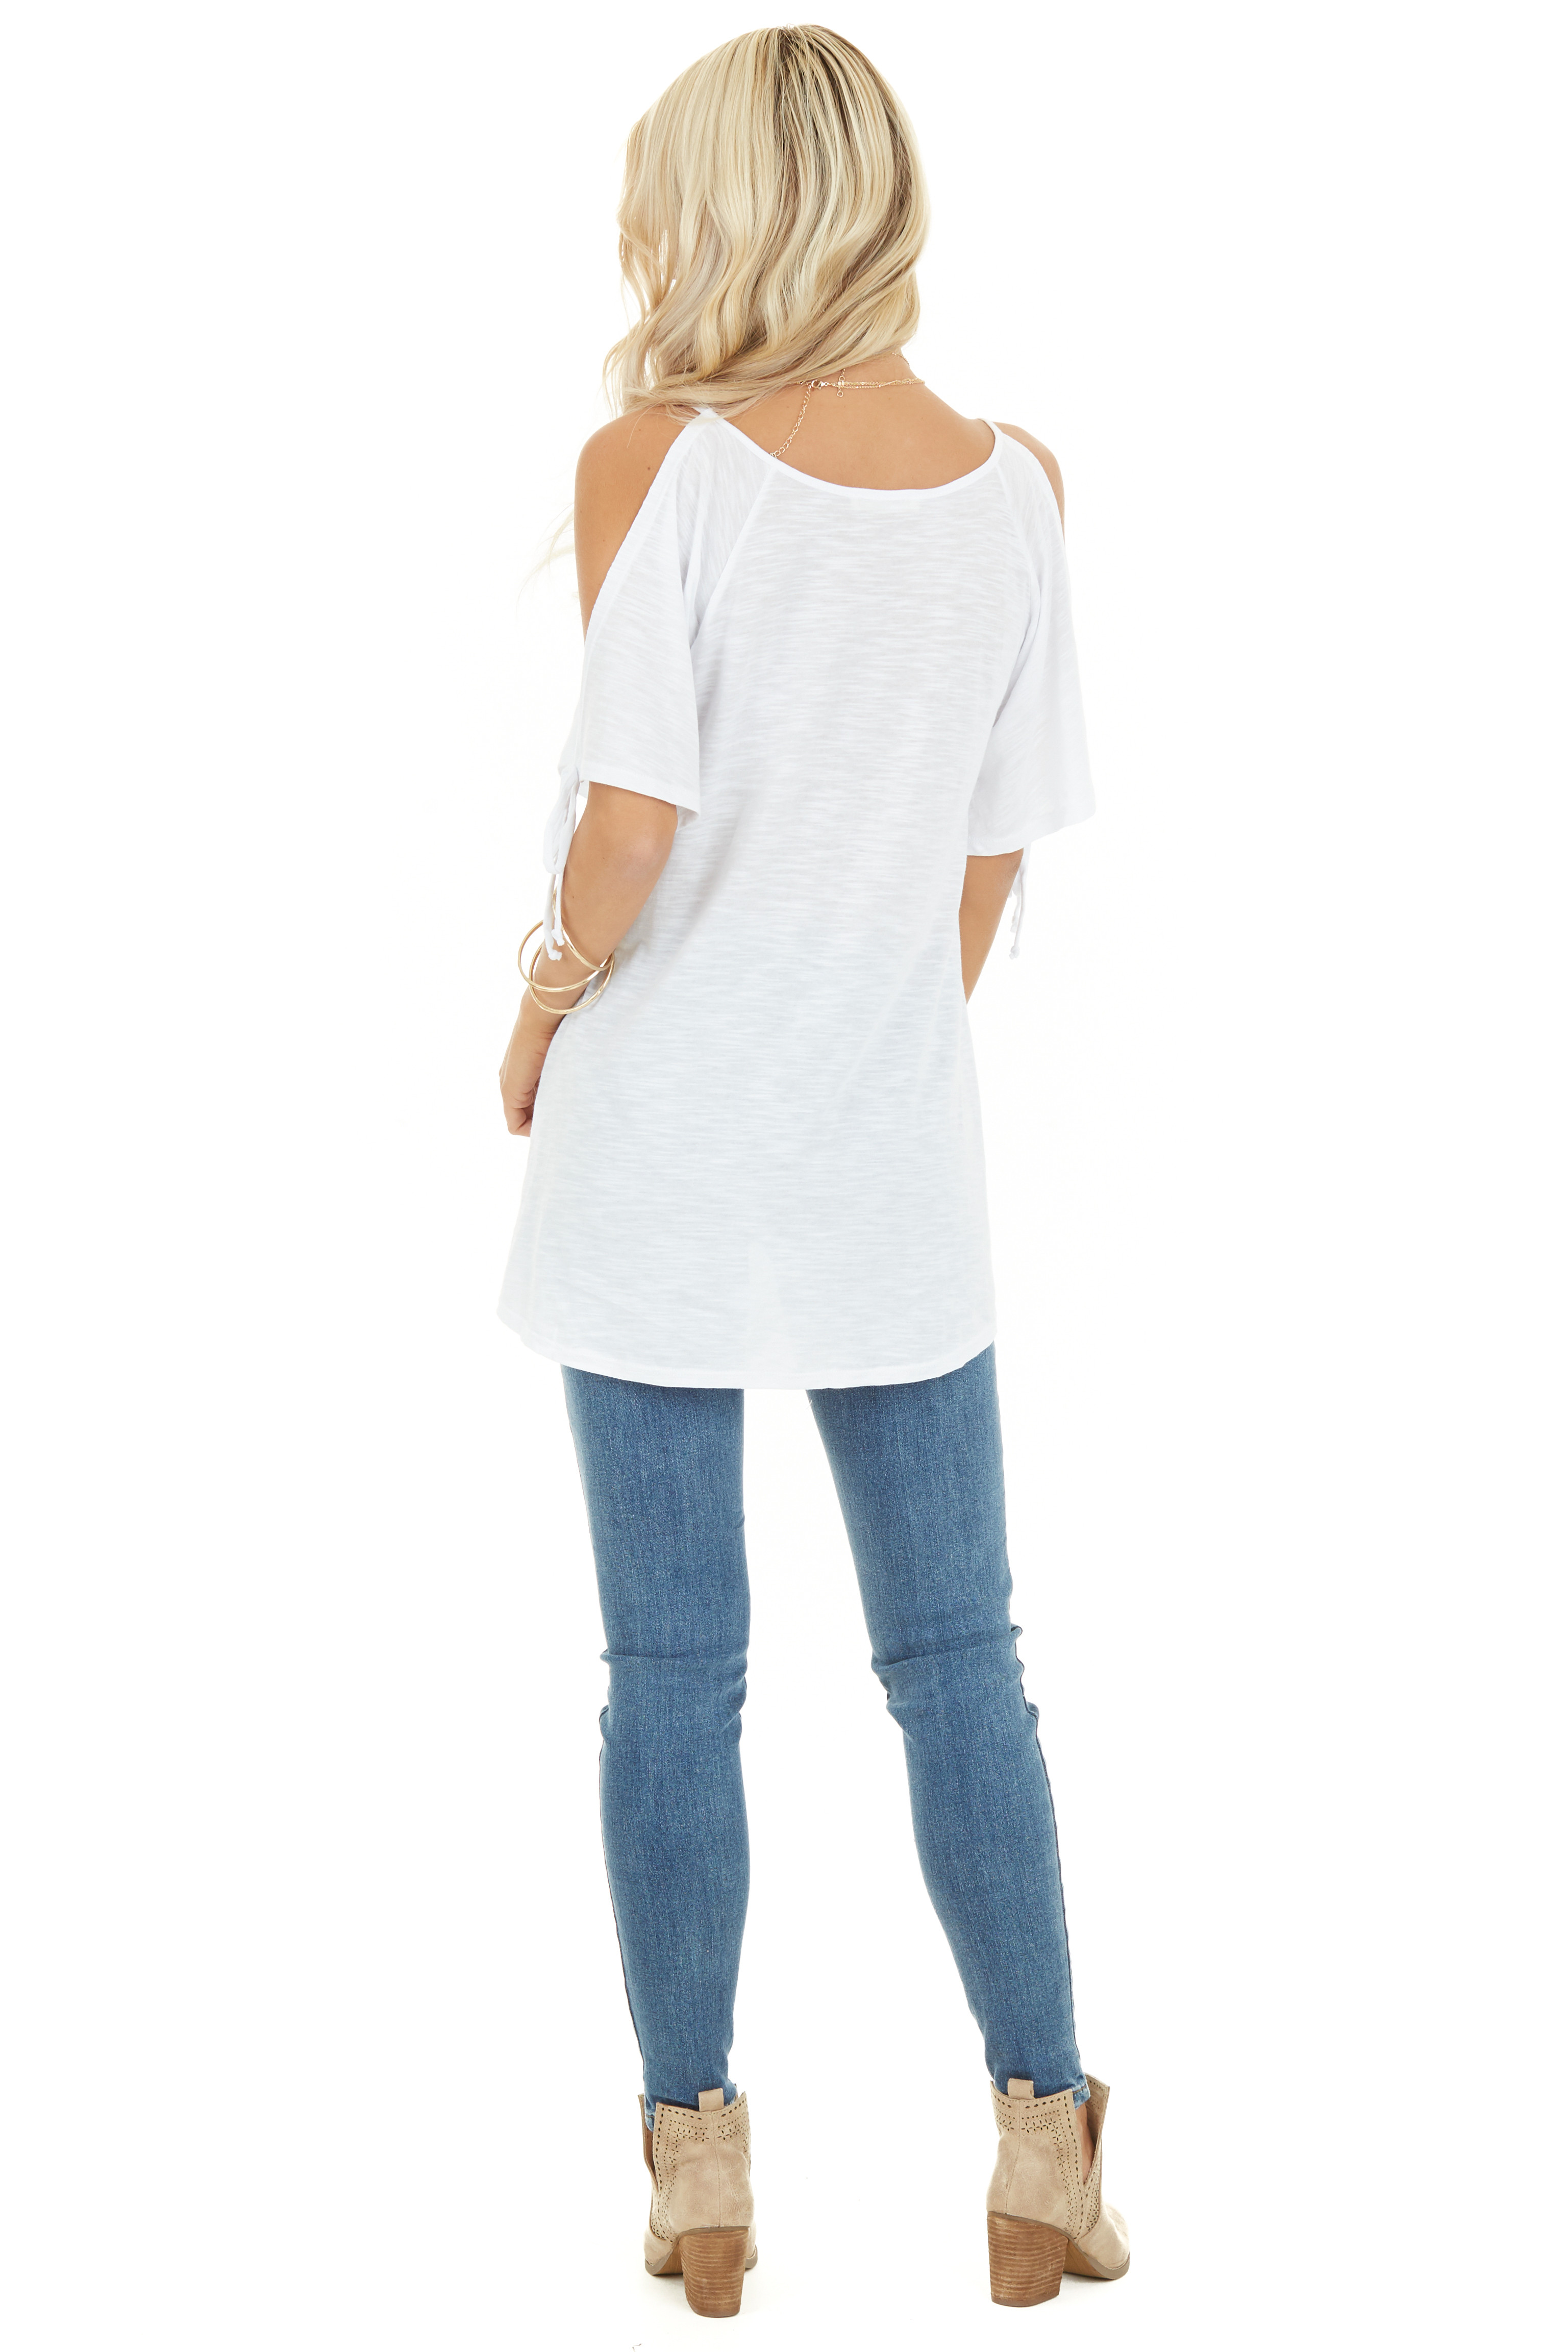 Heathered Ivory Cold Shoulder Short Sleeve Top with Ties back full body